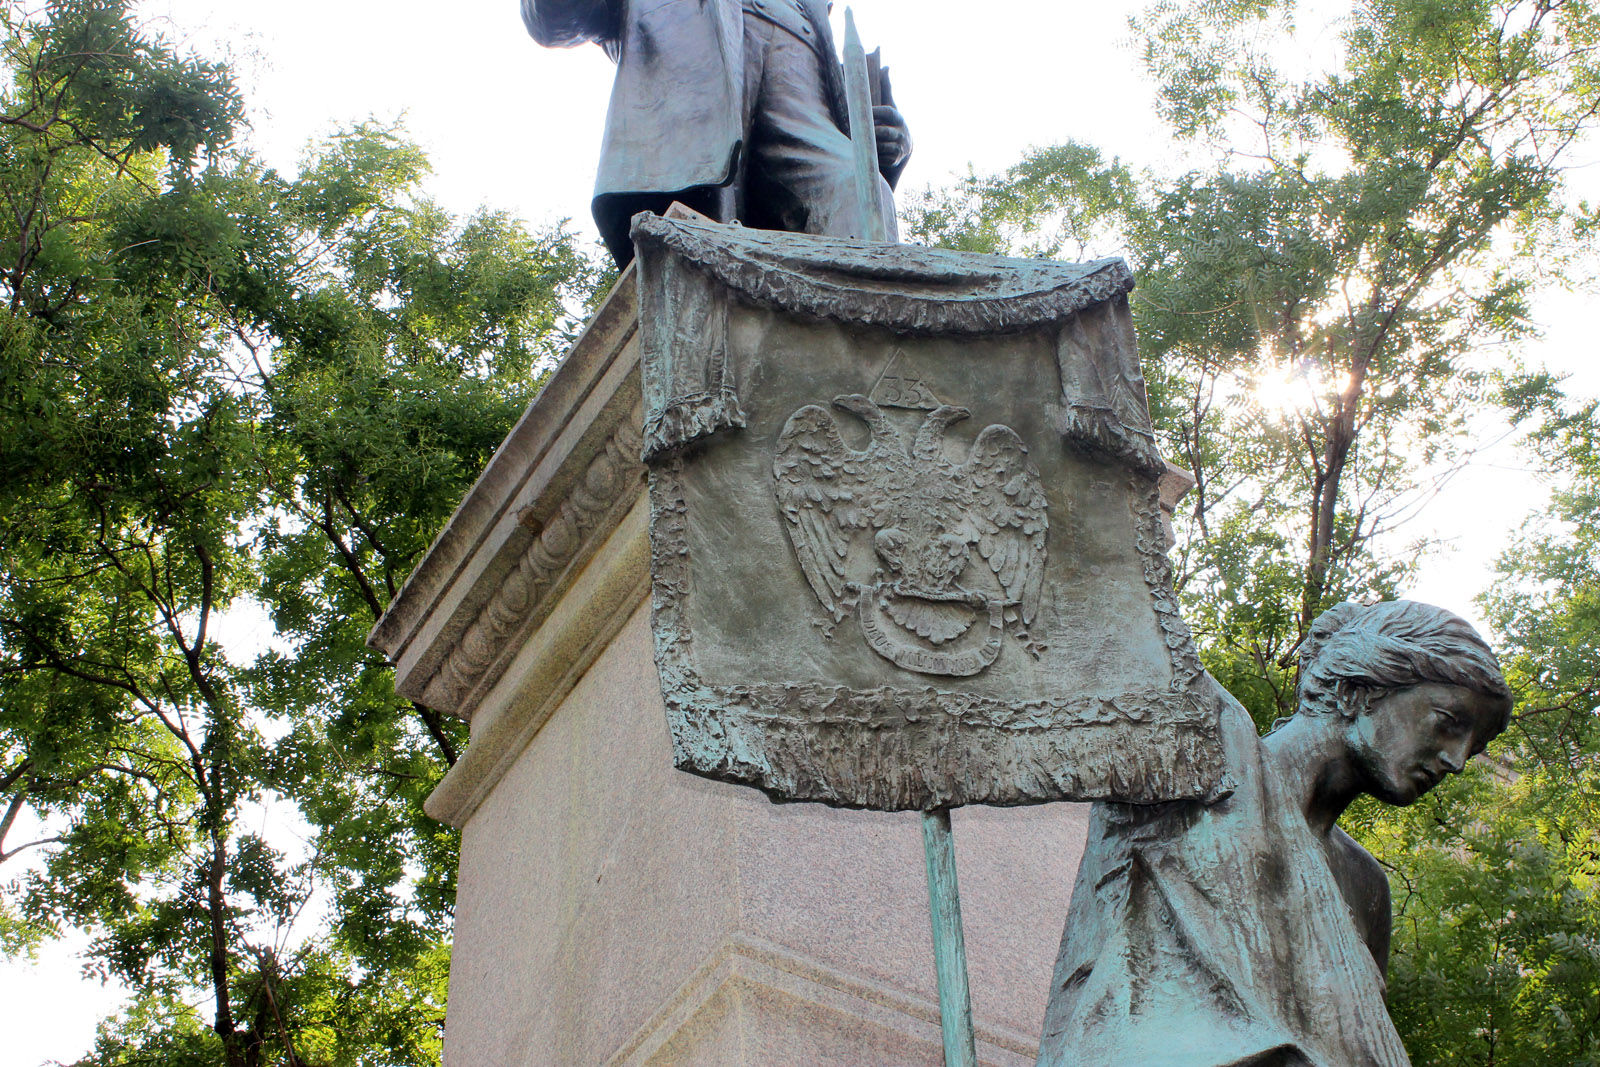 The figure holds the Scottish Rite banner. Pike is also depicted holding a book of Freemason philosphy that he wrote. The Scottish Rite paid for the statue to recognize Pike's dedication to their organization and ideals of moral and social improvement. Earlier in his life, he also supported slavery and joined the Confederate Army. The monument, erected in 1901, was the scene of a protest earlier this week and D.C. officials are now calling for its removal.  (WTOP/Amanda Iacone)